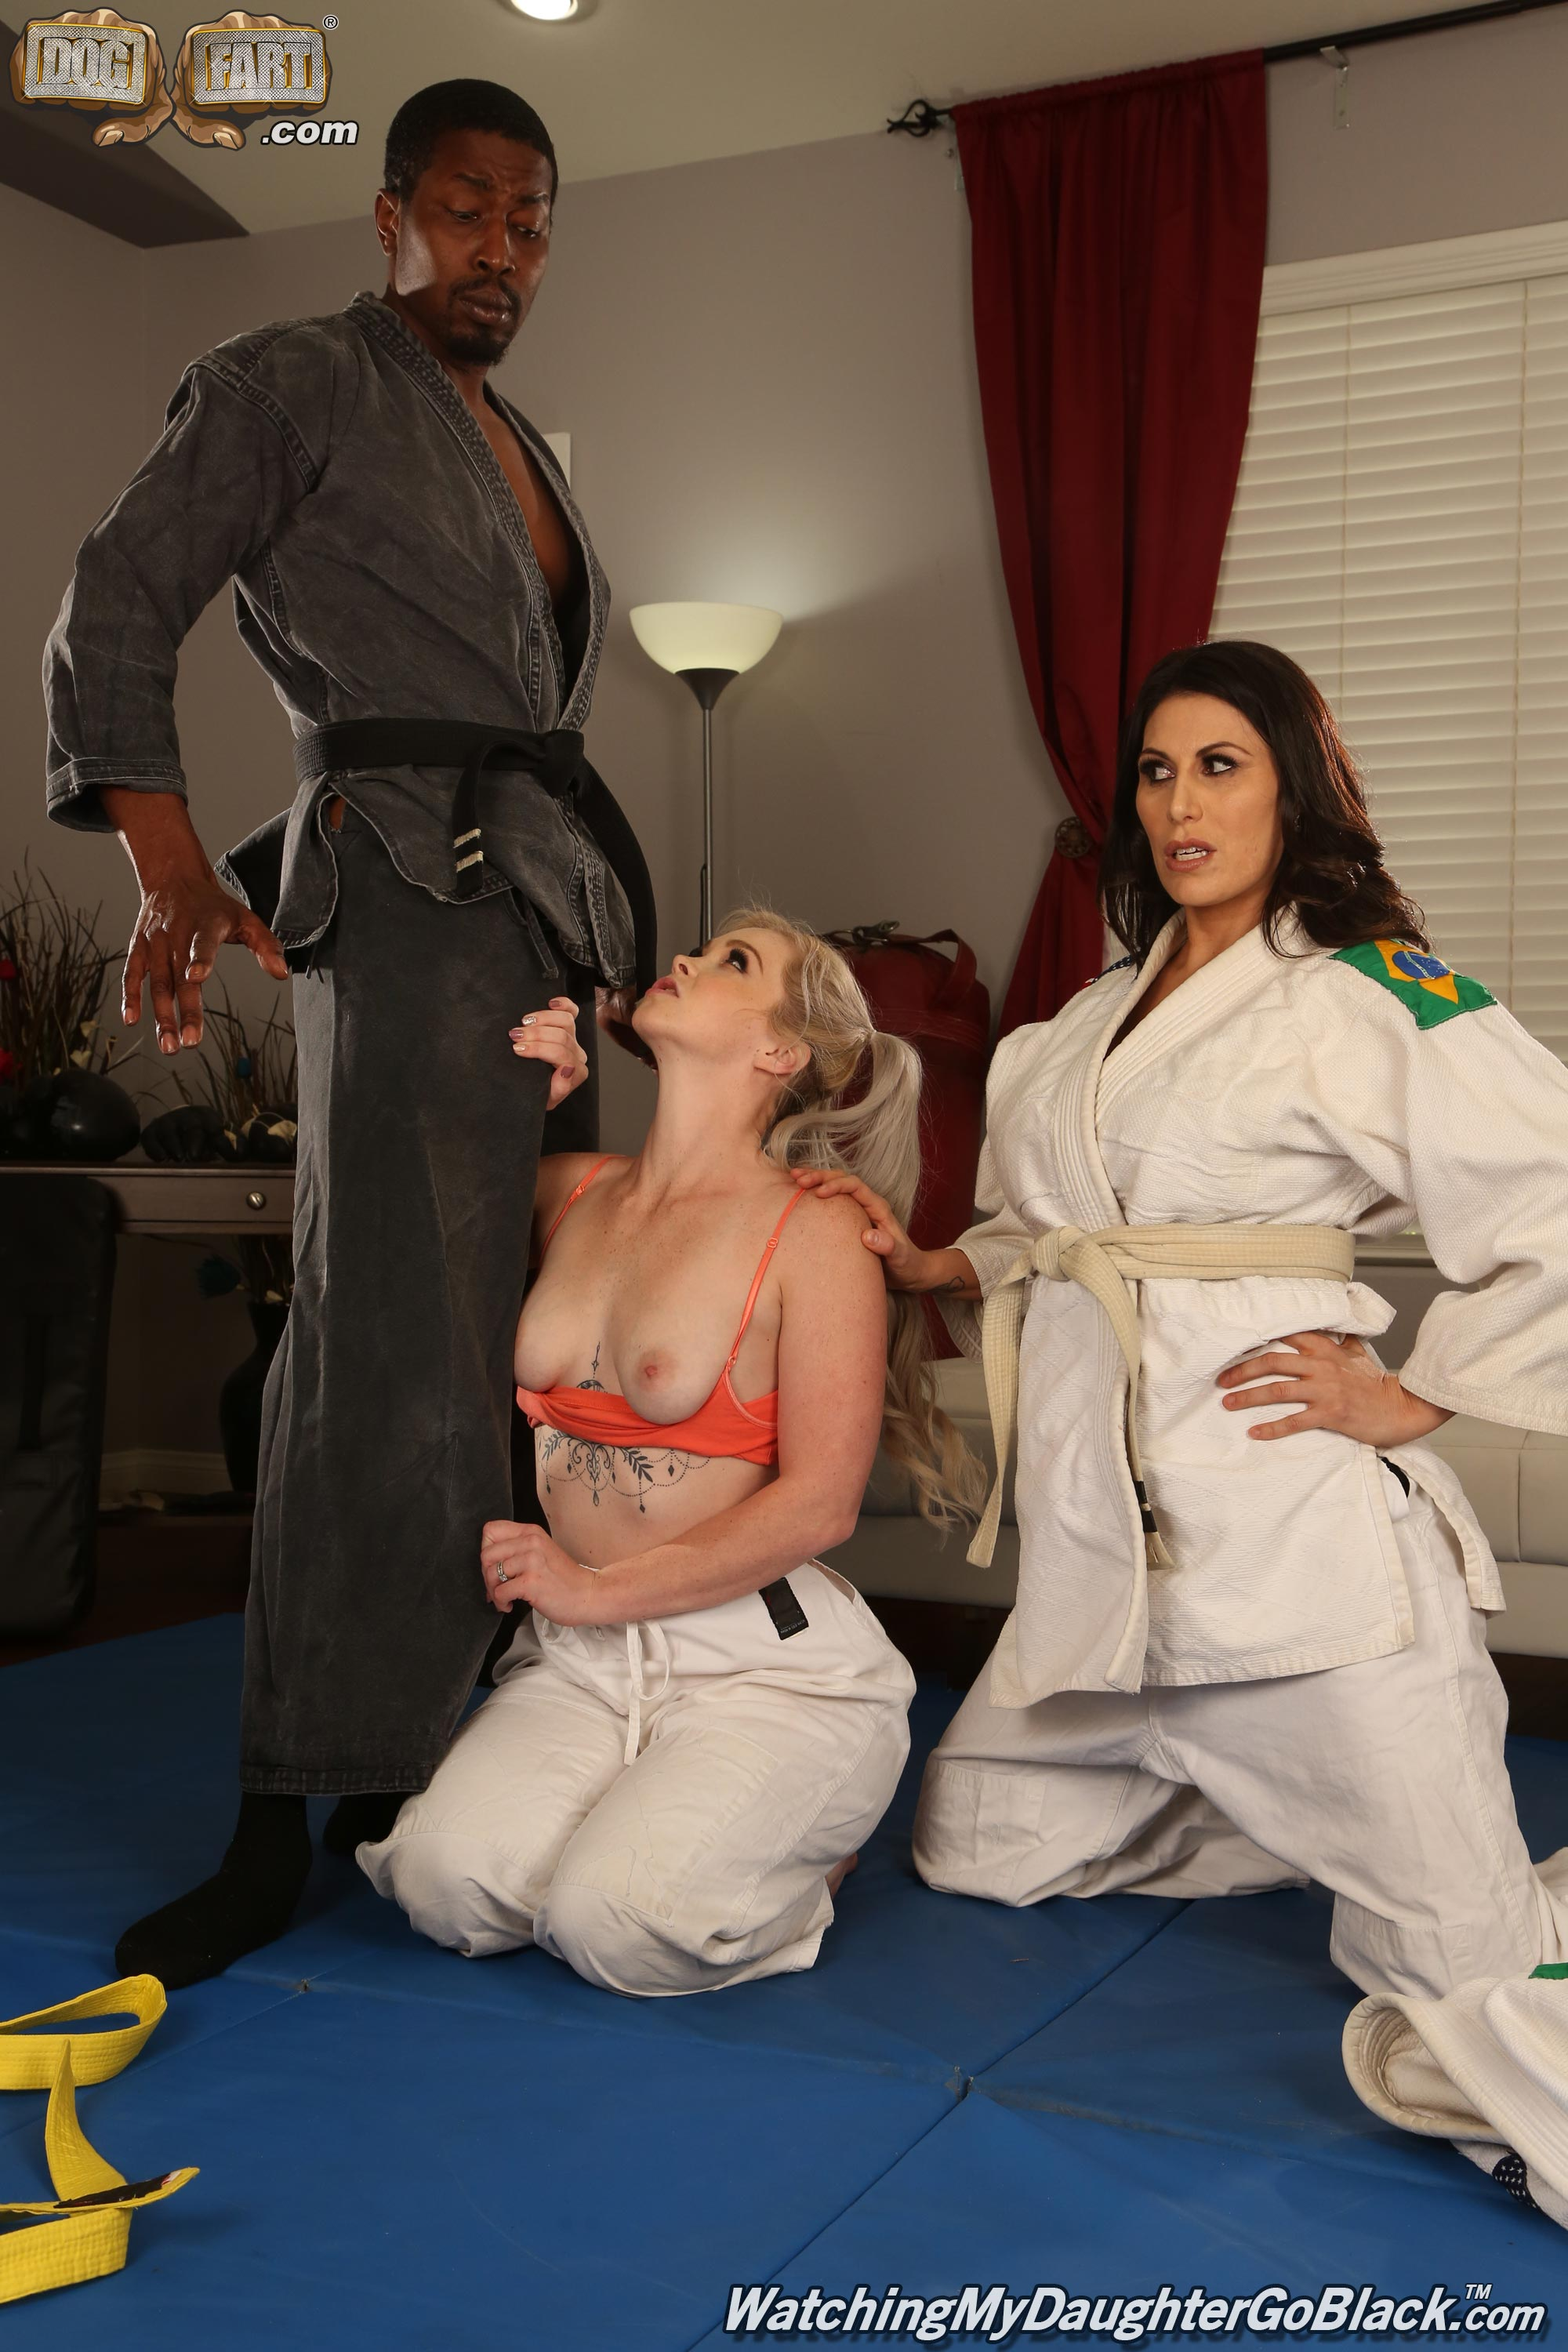 Dogfart 'and Makayla Cox - Watching My Daughter Go Black' starring Kay Carter (Photo 4)